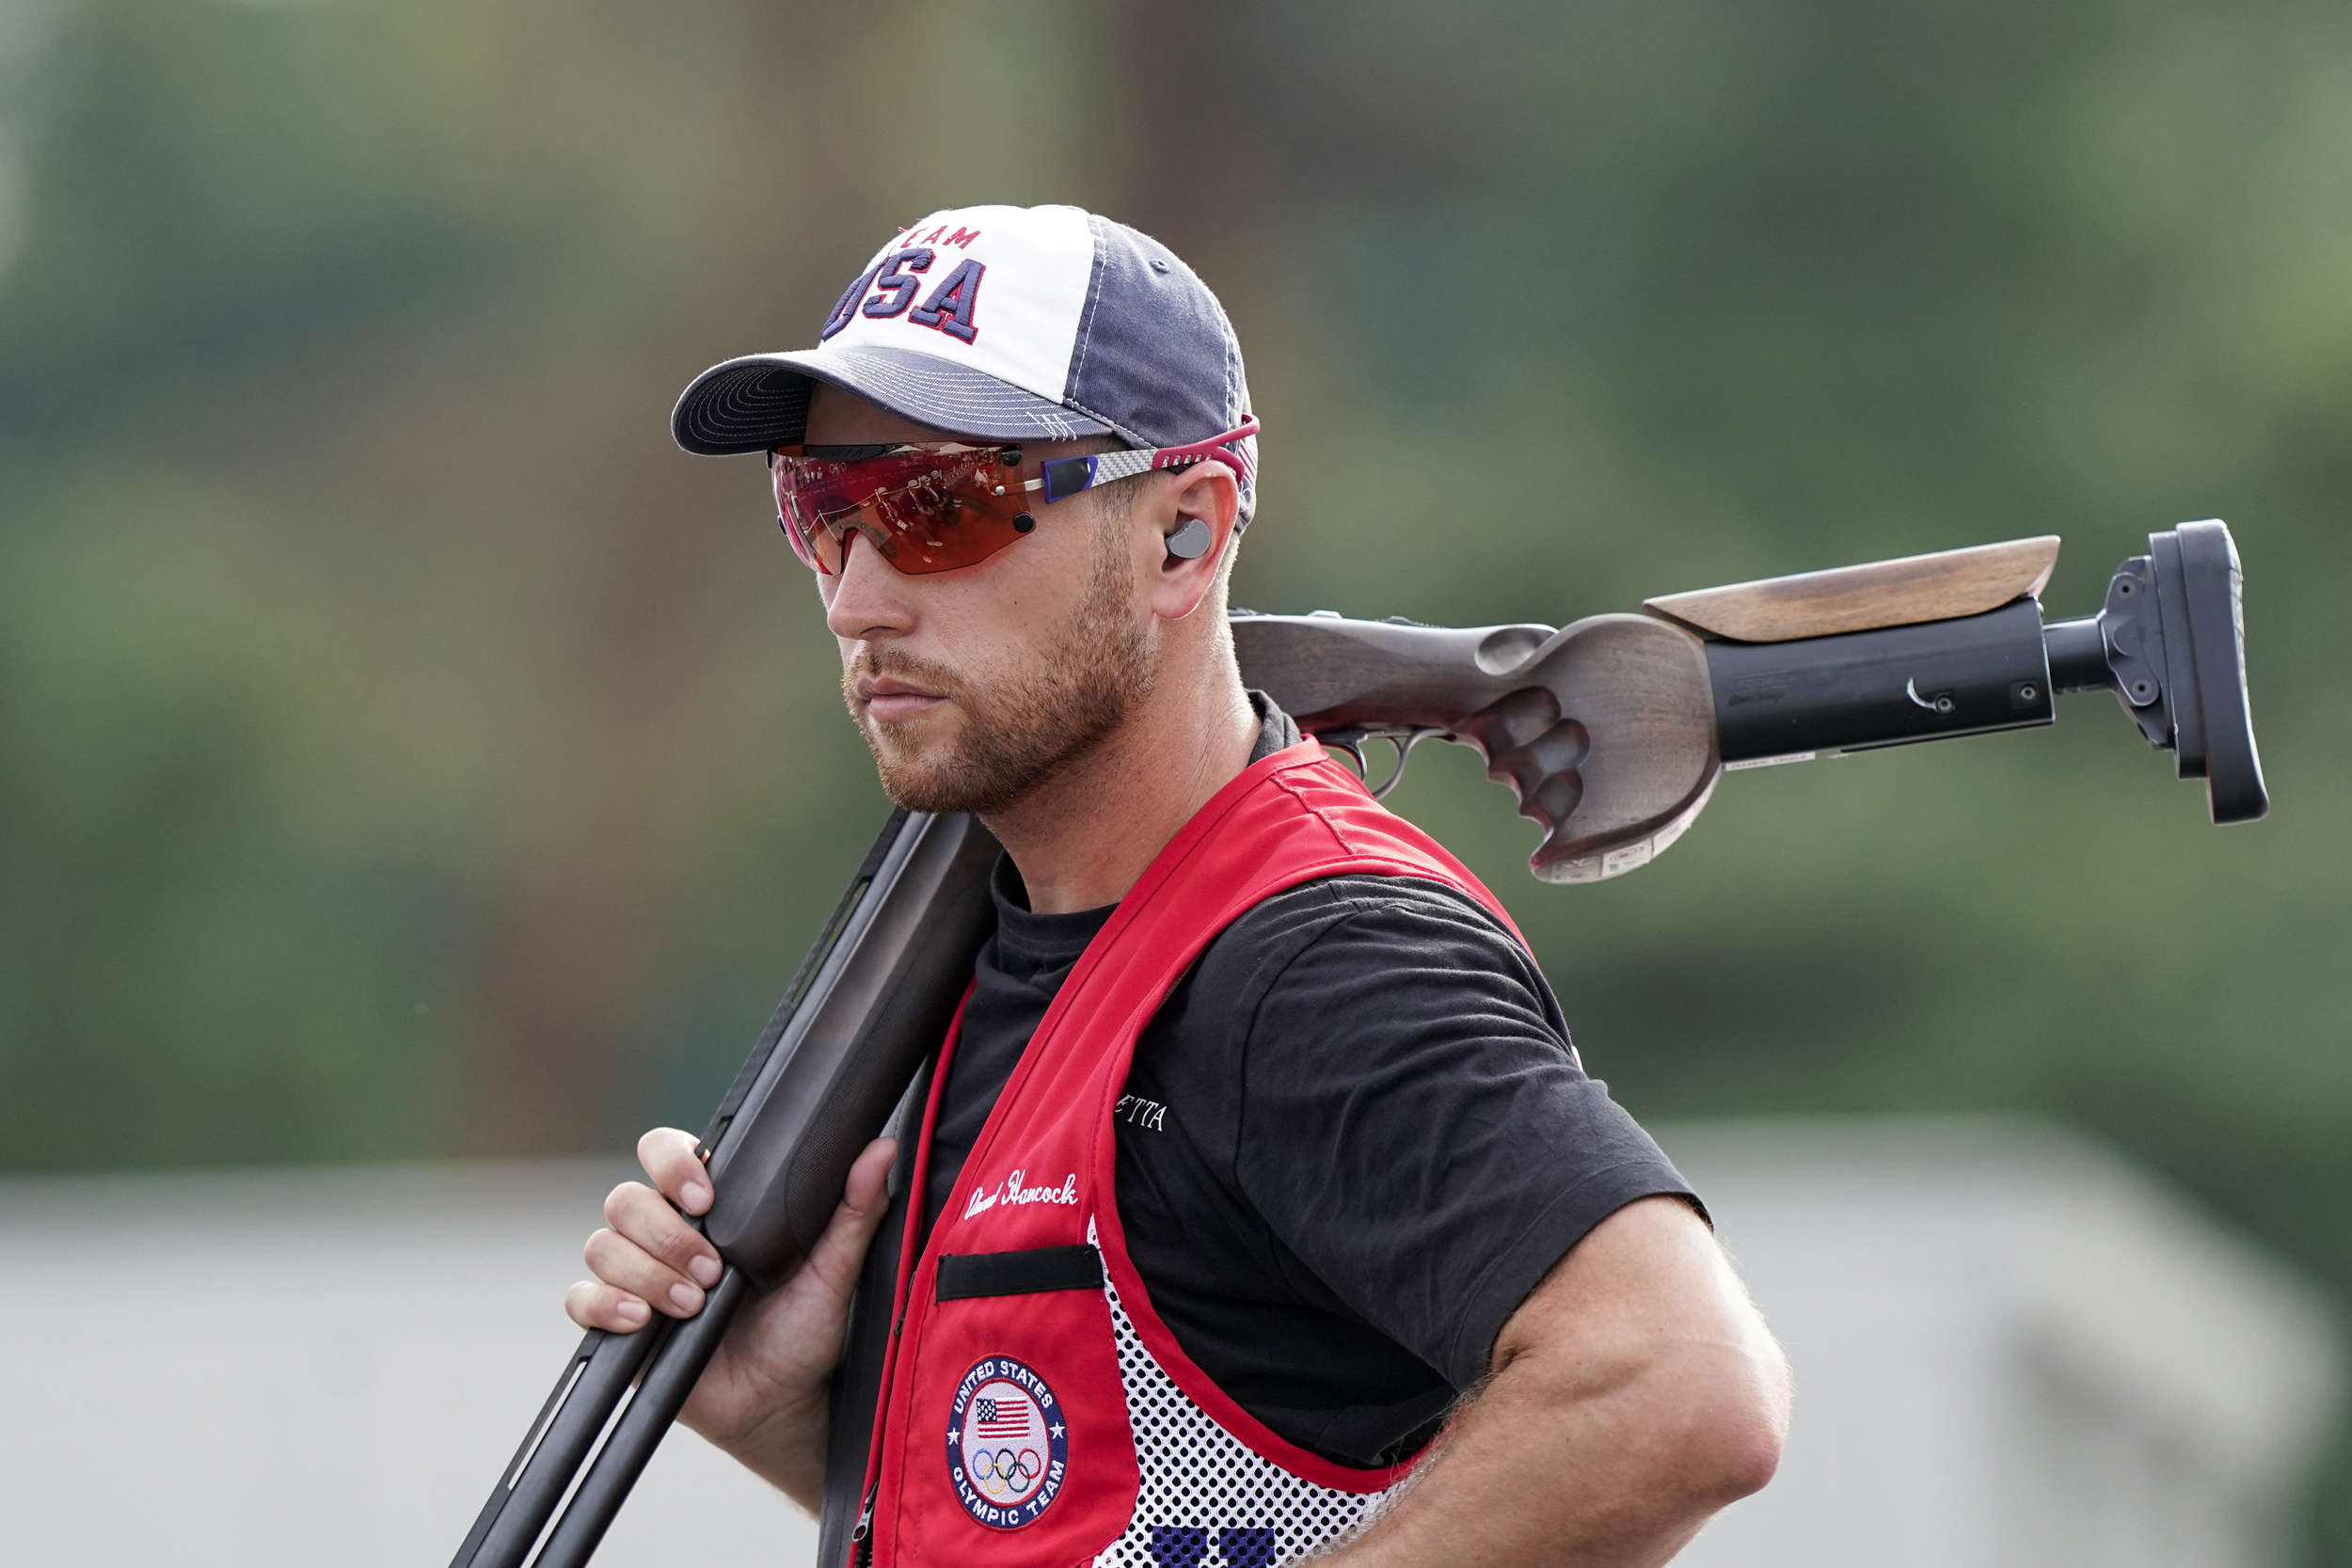 Day 3 roundup: Pool thrillers and a skeet sweep